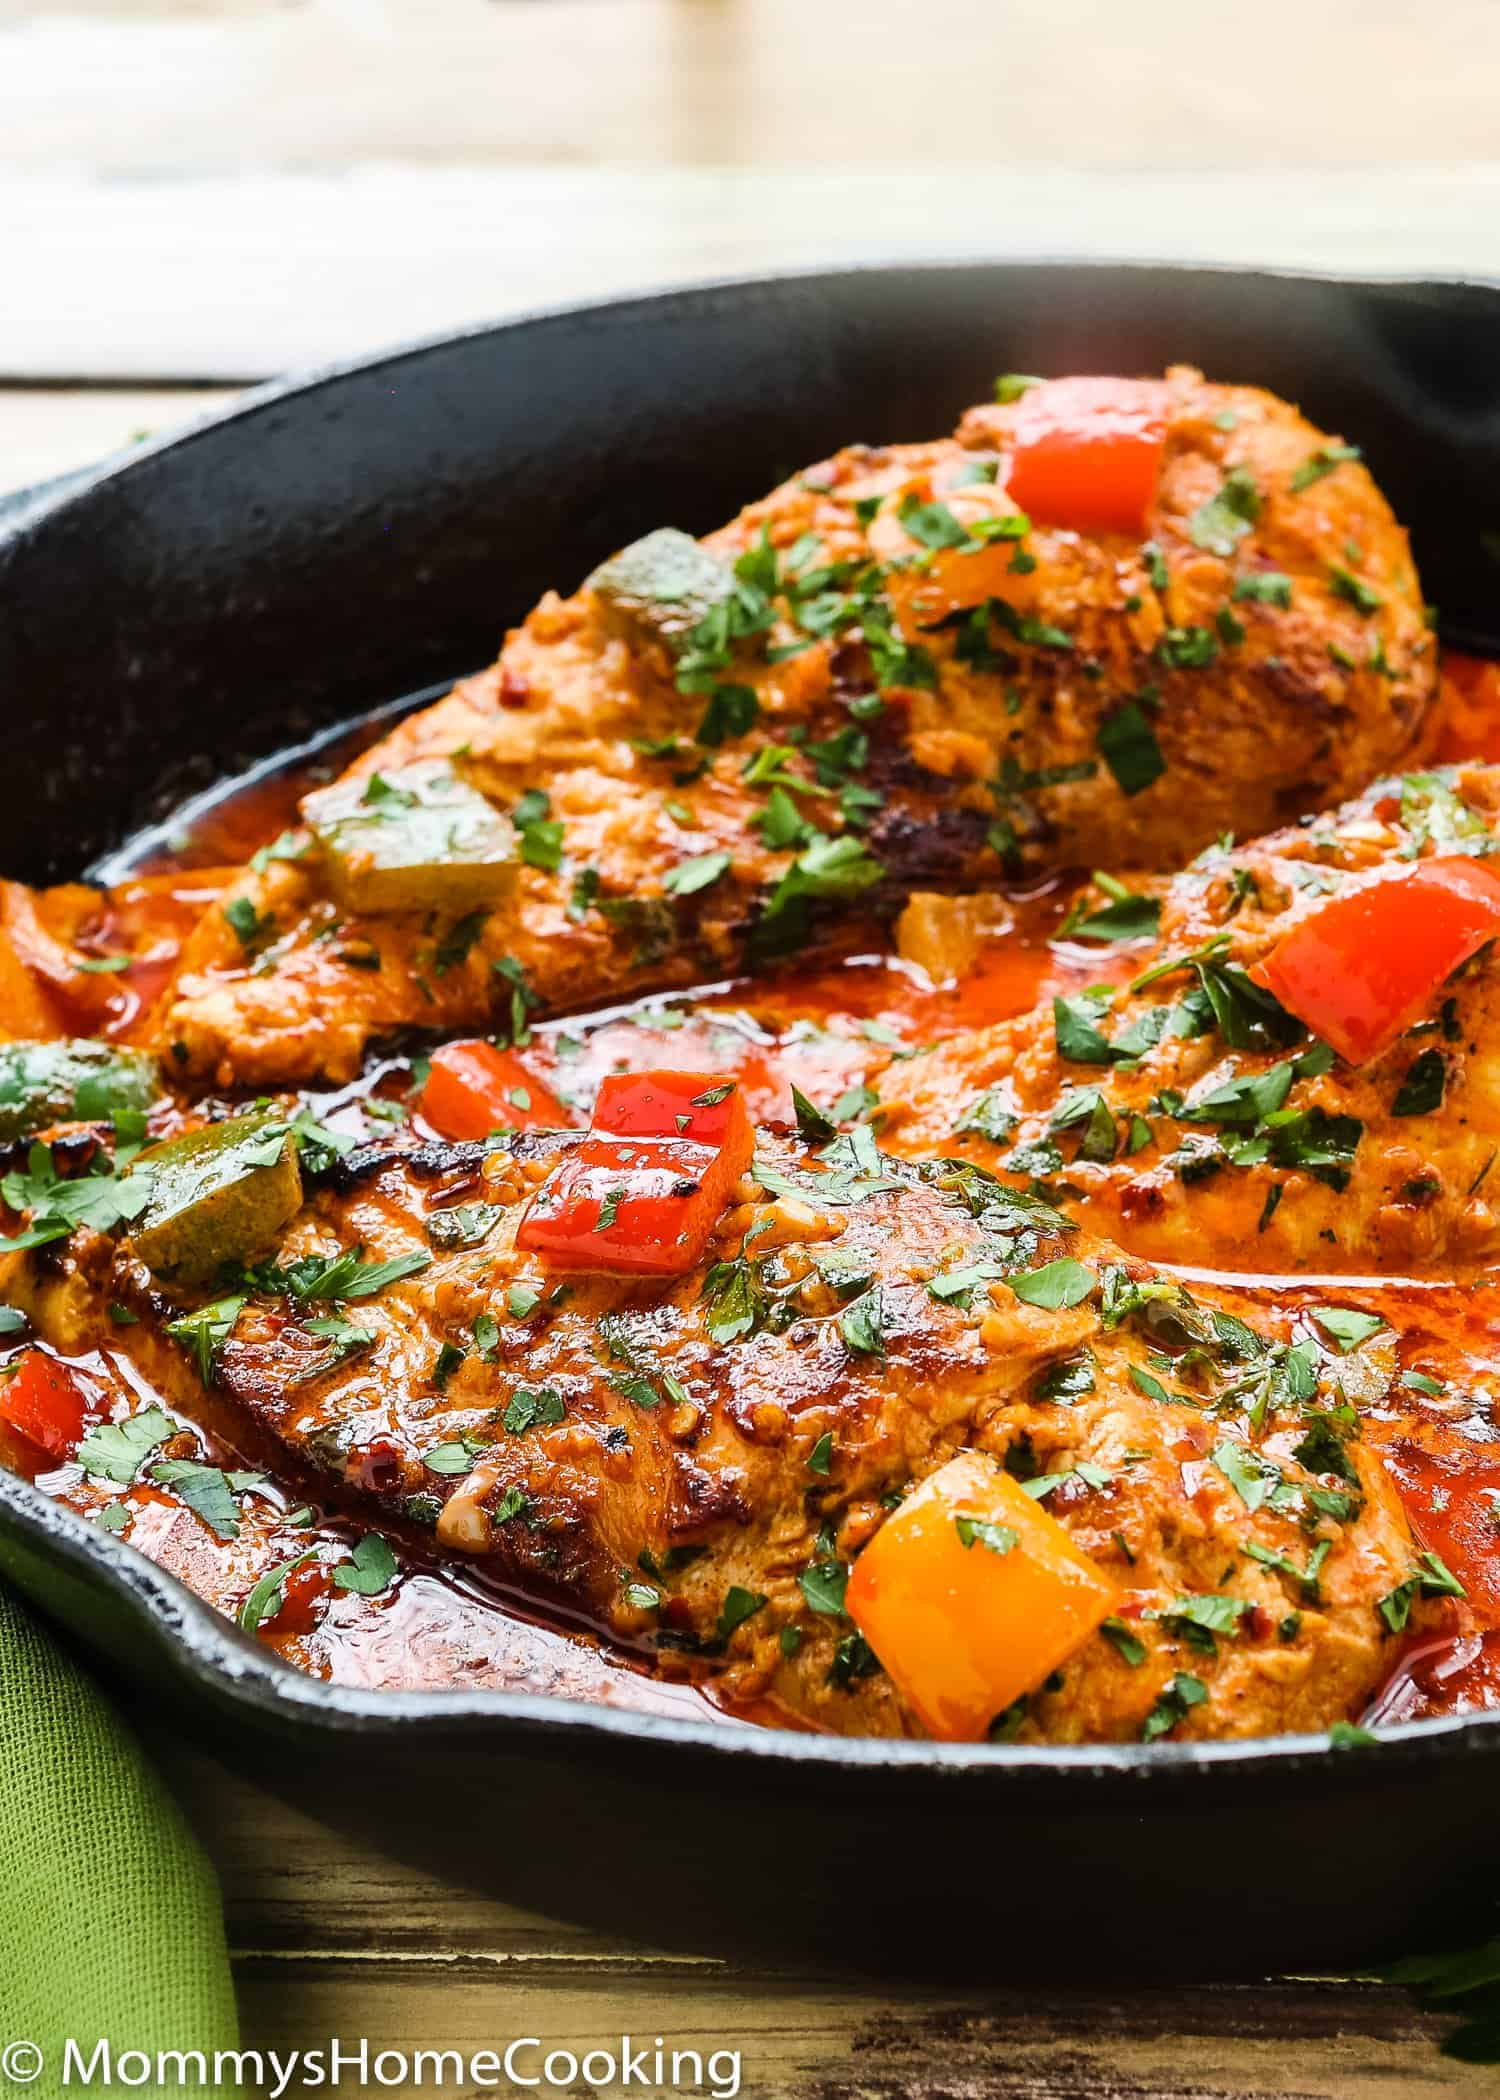 This Creamy Peri Peri Chicken is zesty, succulent, and easy to pull off. A simple weeknight dish, yet fancy enough to wow your guests at any gathering. https://mommyshomecooking.com